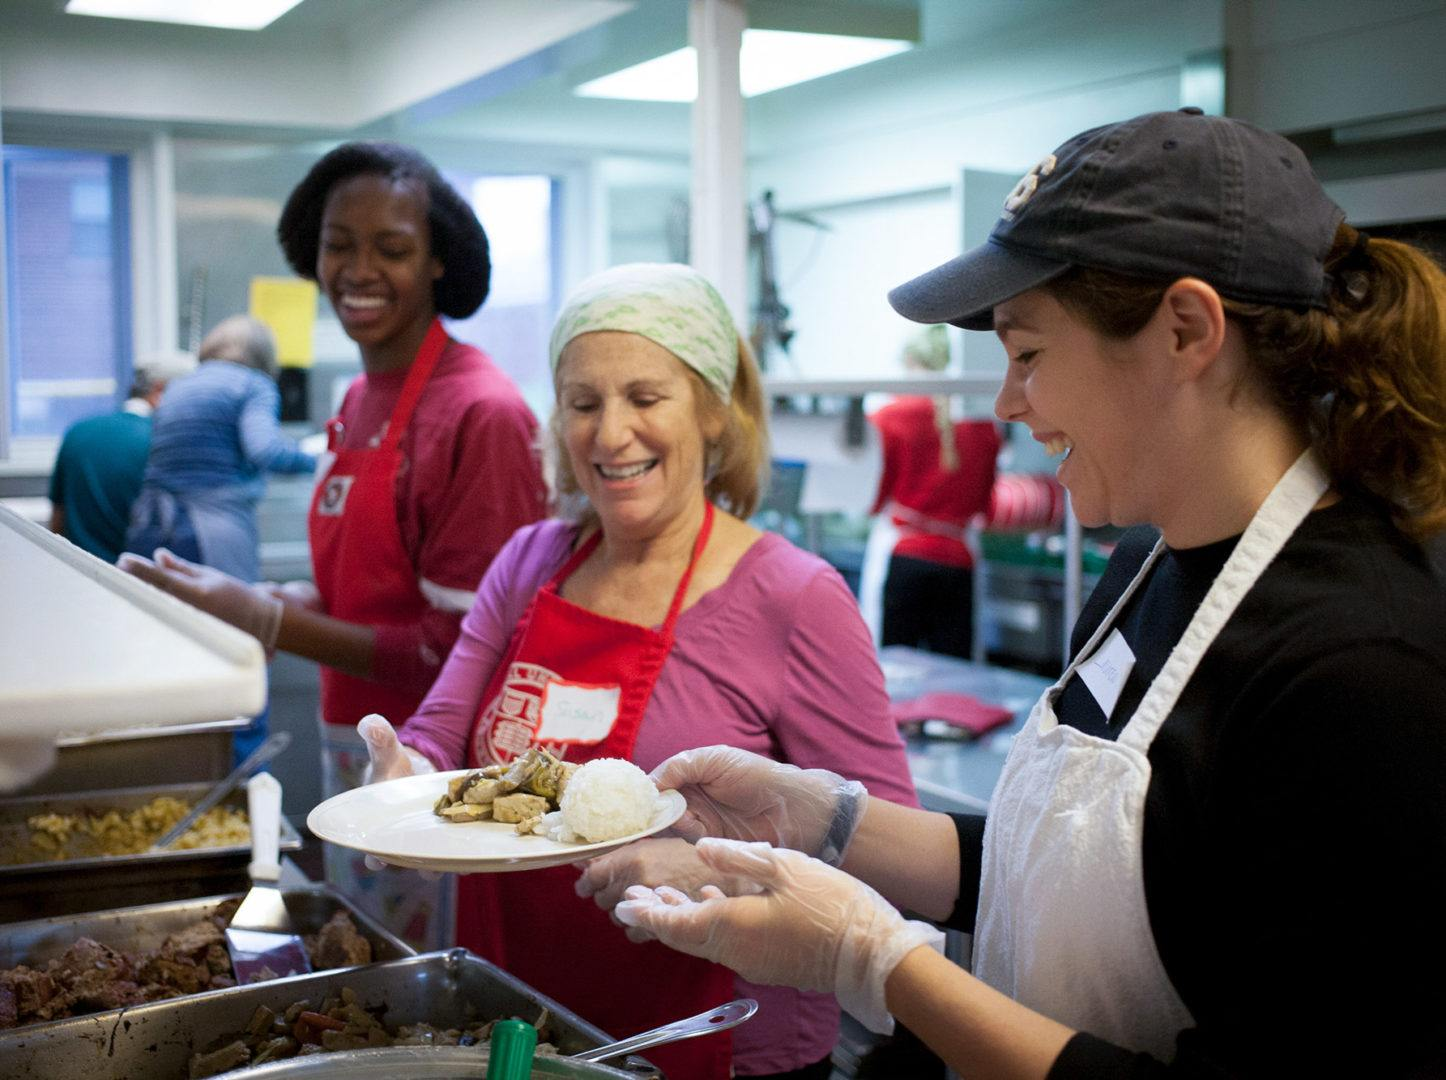 Students and staff volunteer at Loaves and Fishes as part of the Public Service Center (PSC) Into The Streets event.